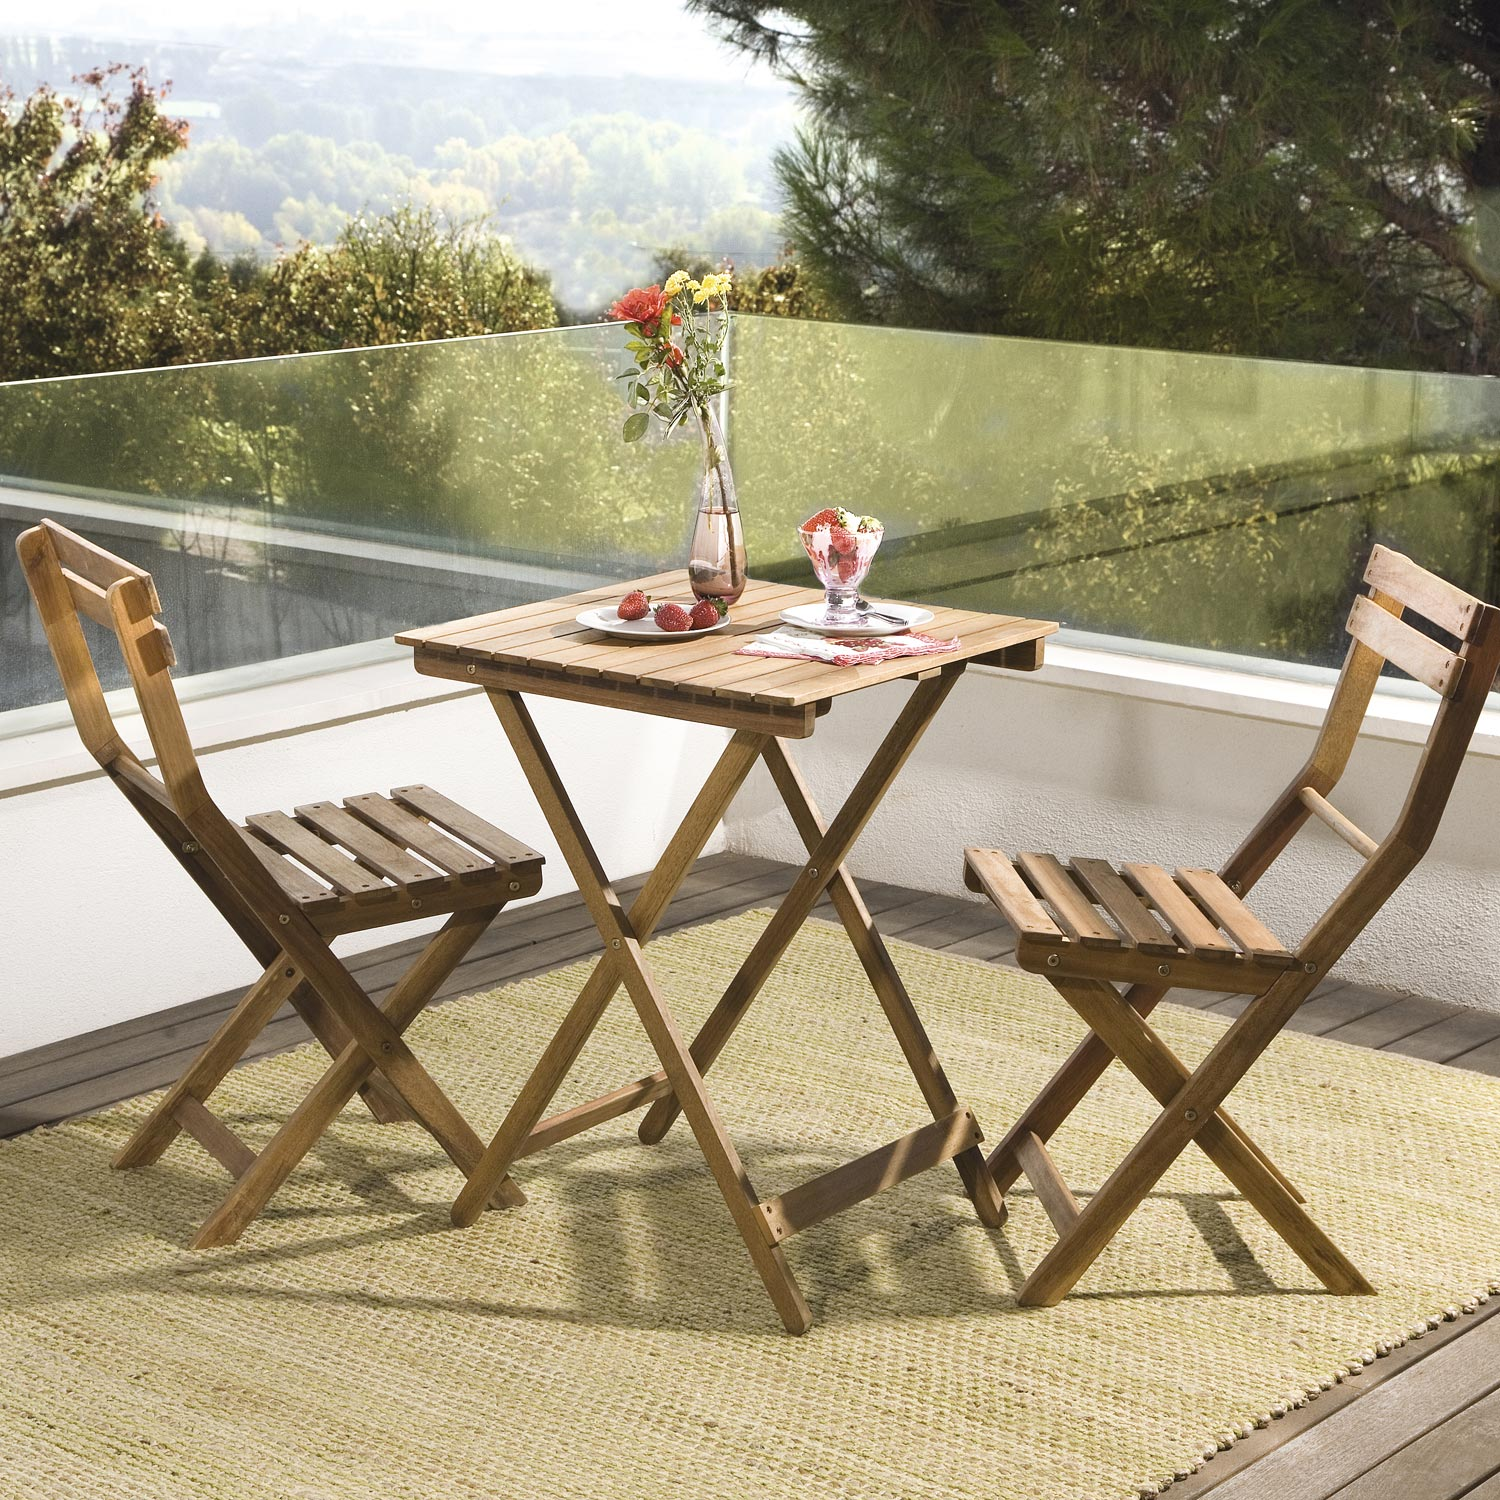 salon de jardin acacia bois marron 1 table et 2 chaises. Black Bedroom Furniture Sets. Home Design Ideas